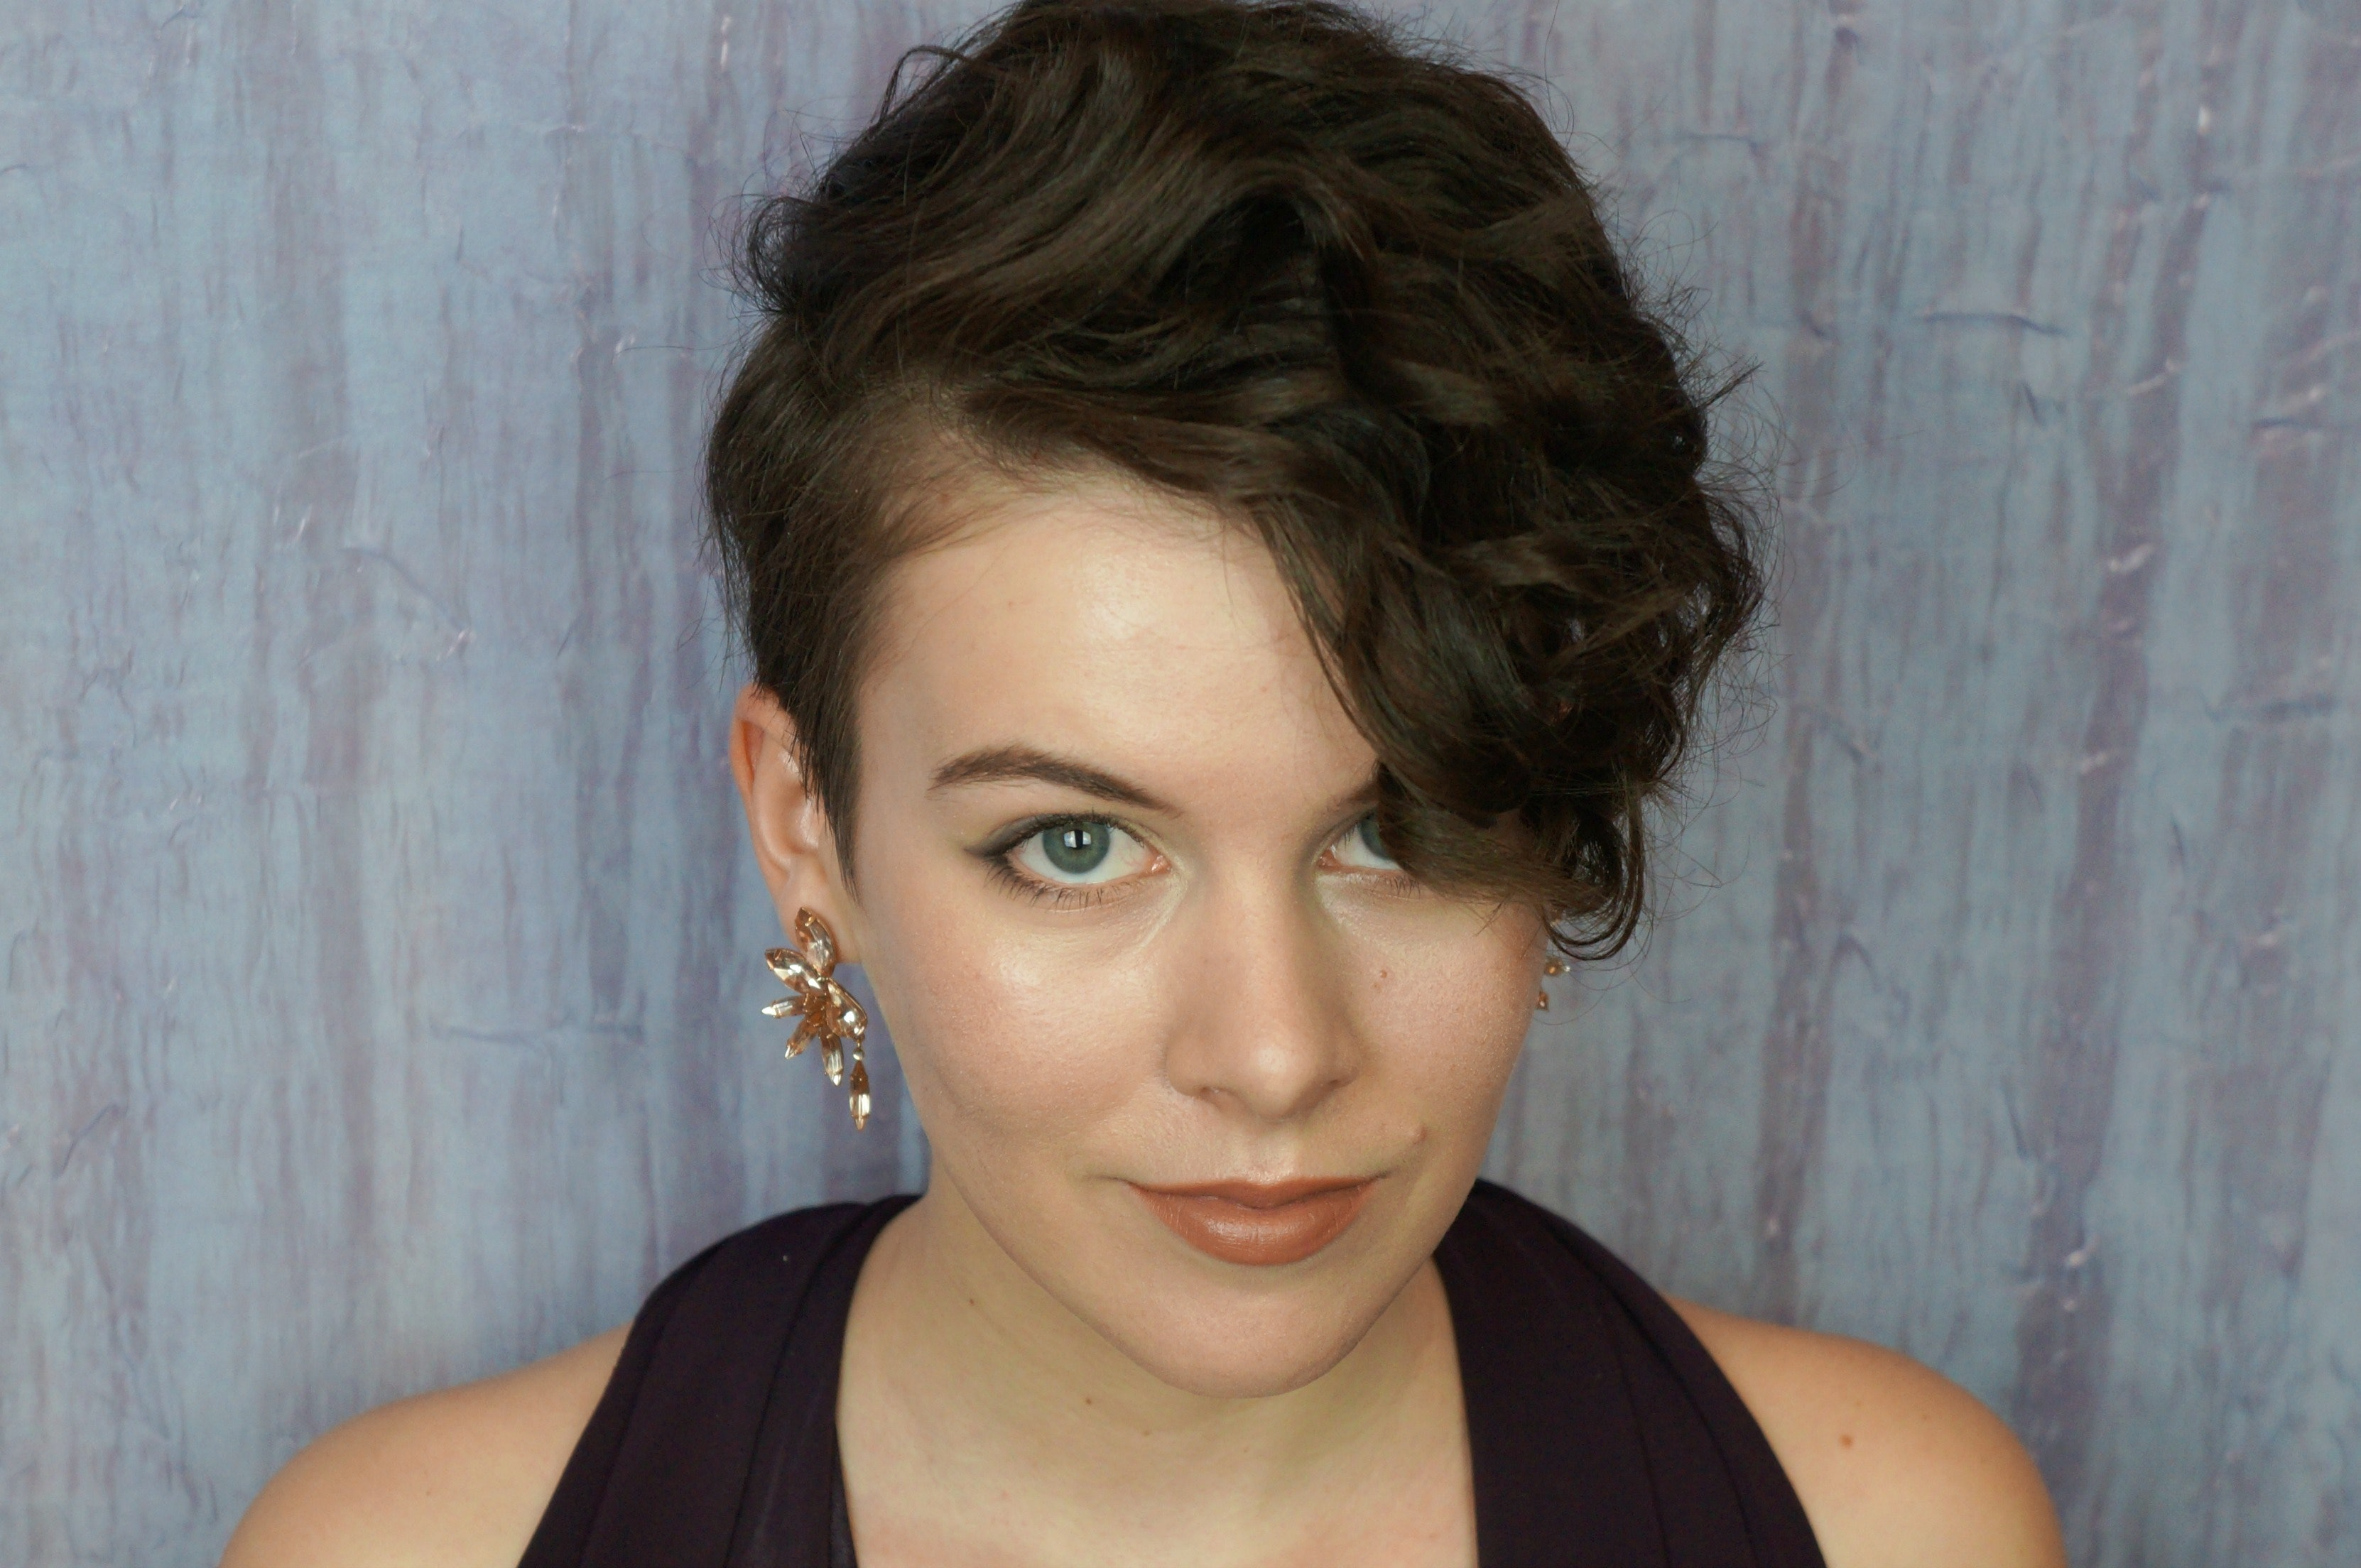 Astounding 4 Short Hairstyles For Prom That Prove Pixie Cuts Can Be Extremely Short Hairstyles Gunalazisus